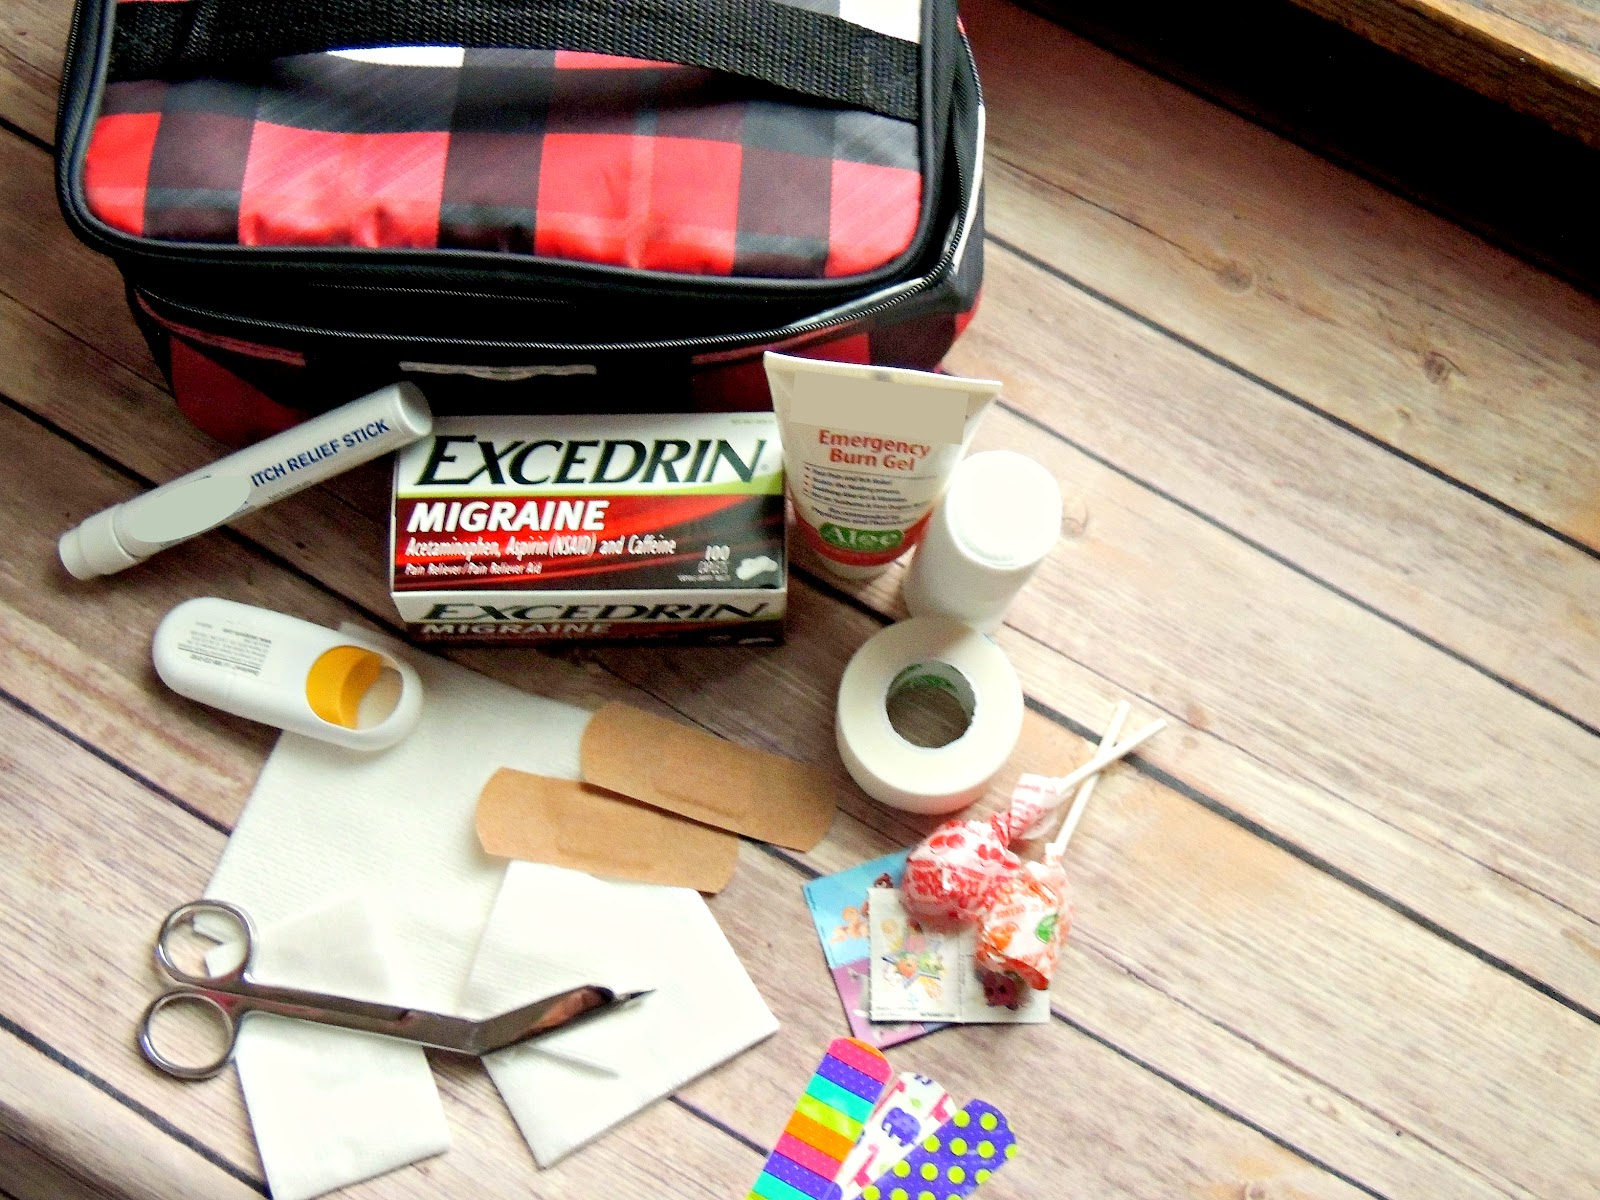 Excedrin® Migraine First Aid Kit for the Family #MoreMomentsWithExcedrin #CollectiveBias #ad 2.jpg